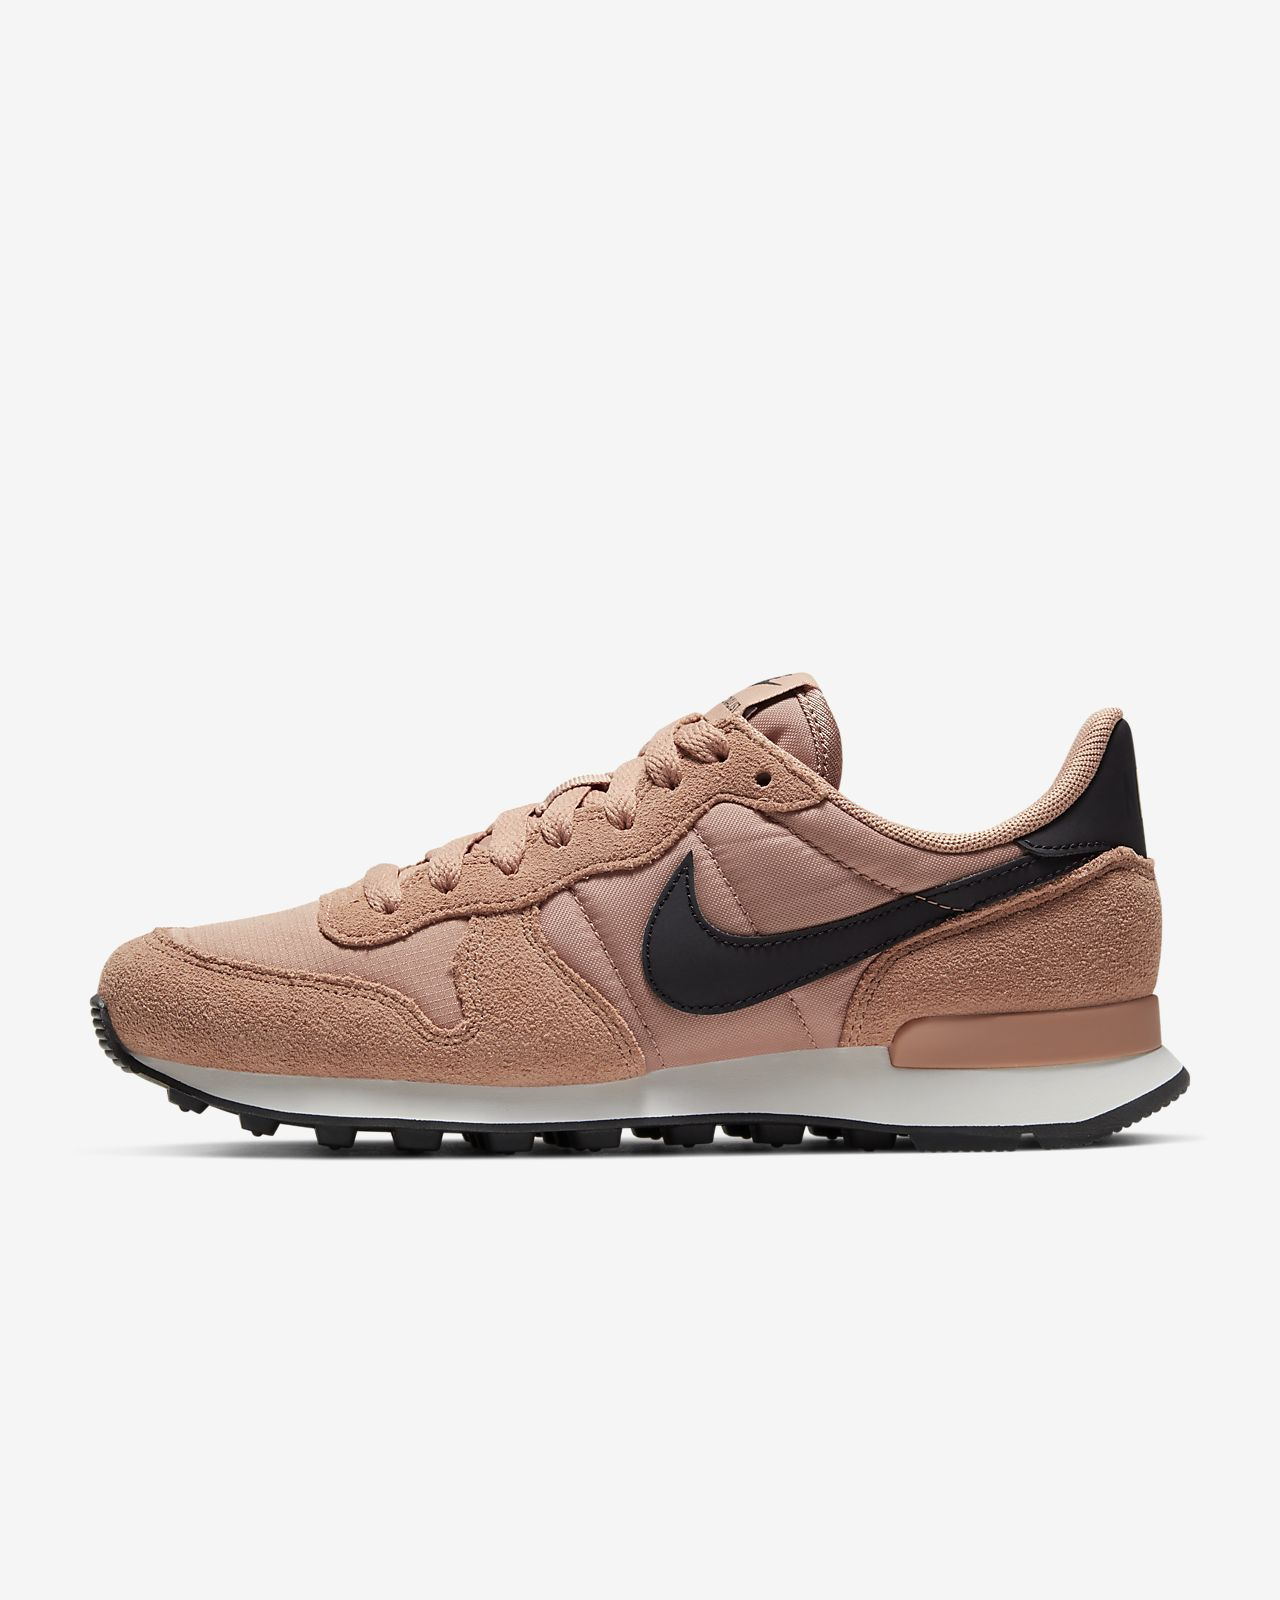 brand new 46691 fab5c Low Resolution Chaussure Nike Internationalist pour Femme Chaussure Nike  Internationalist pour Femme